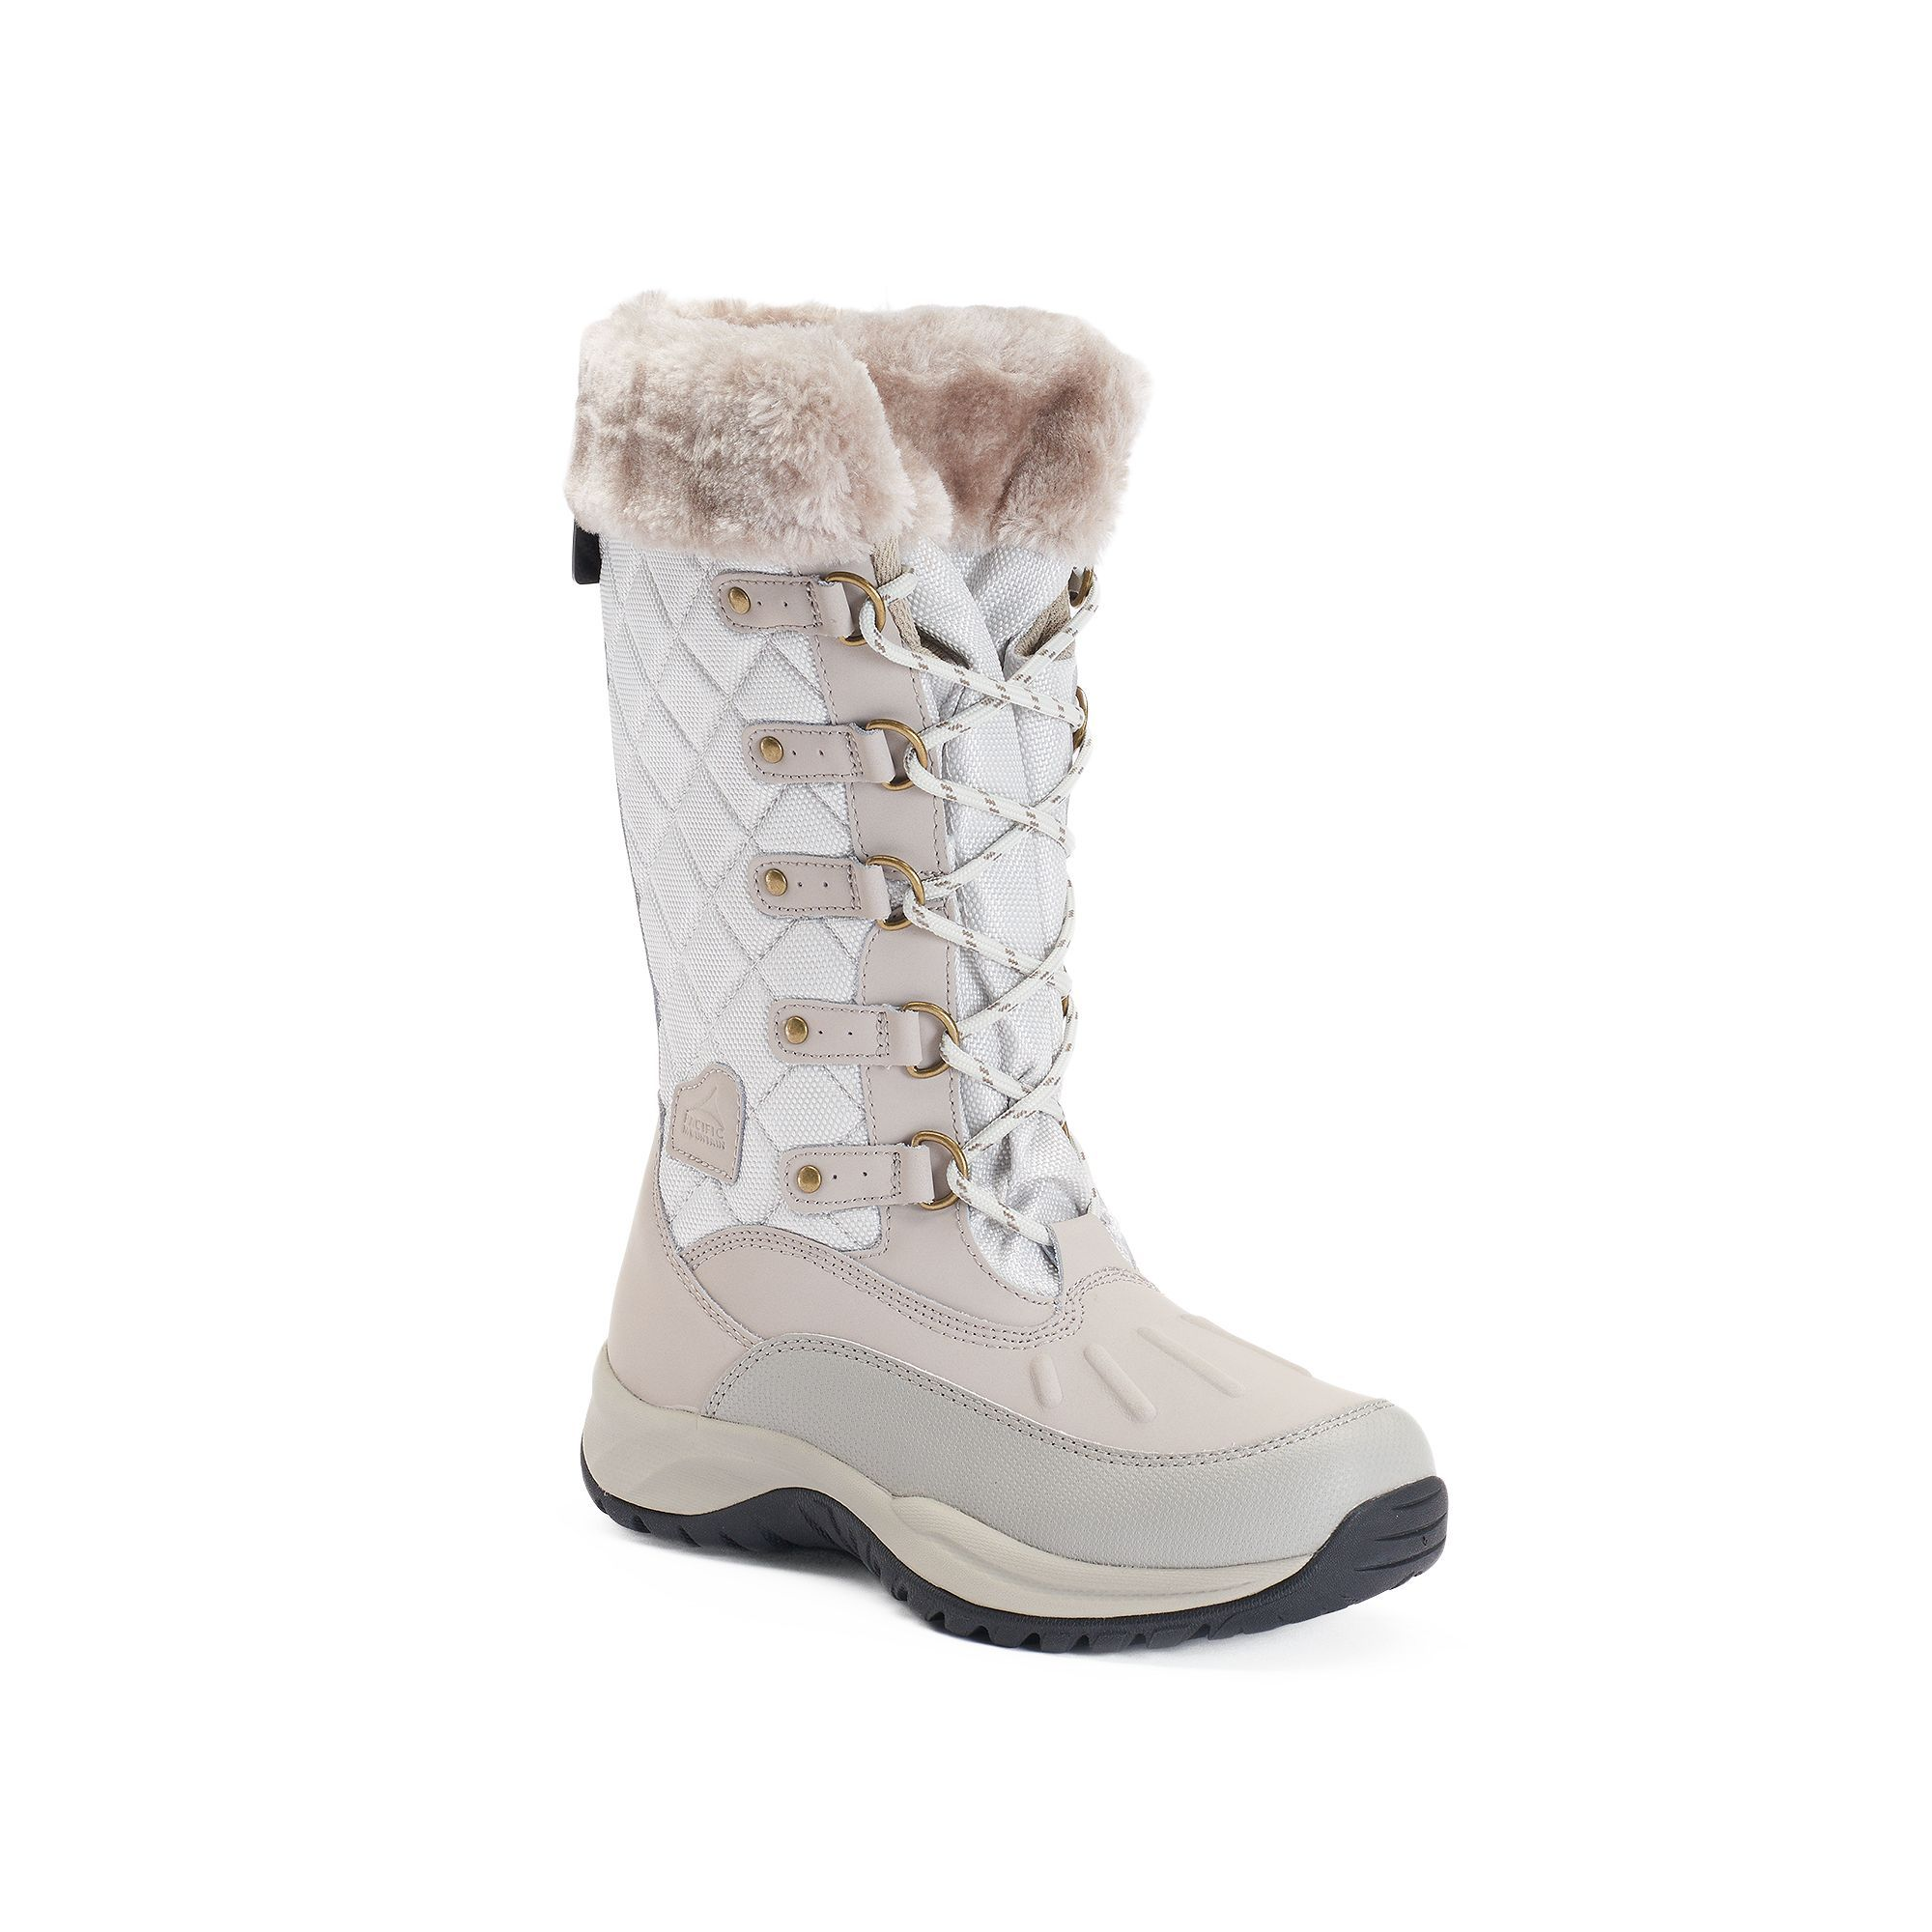 Whiteout Women's Snow Boots